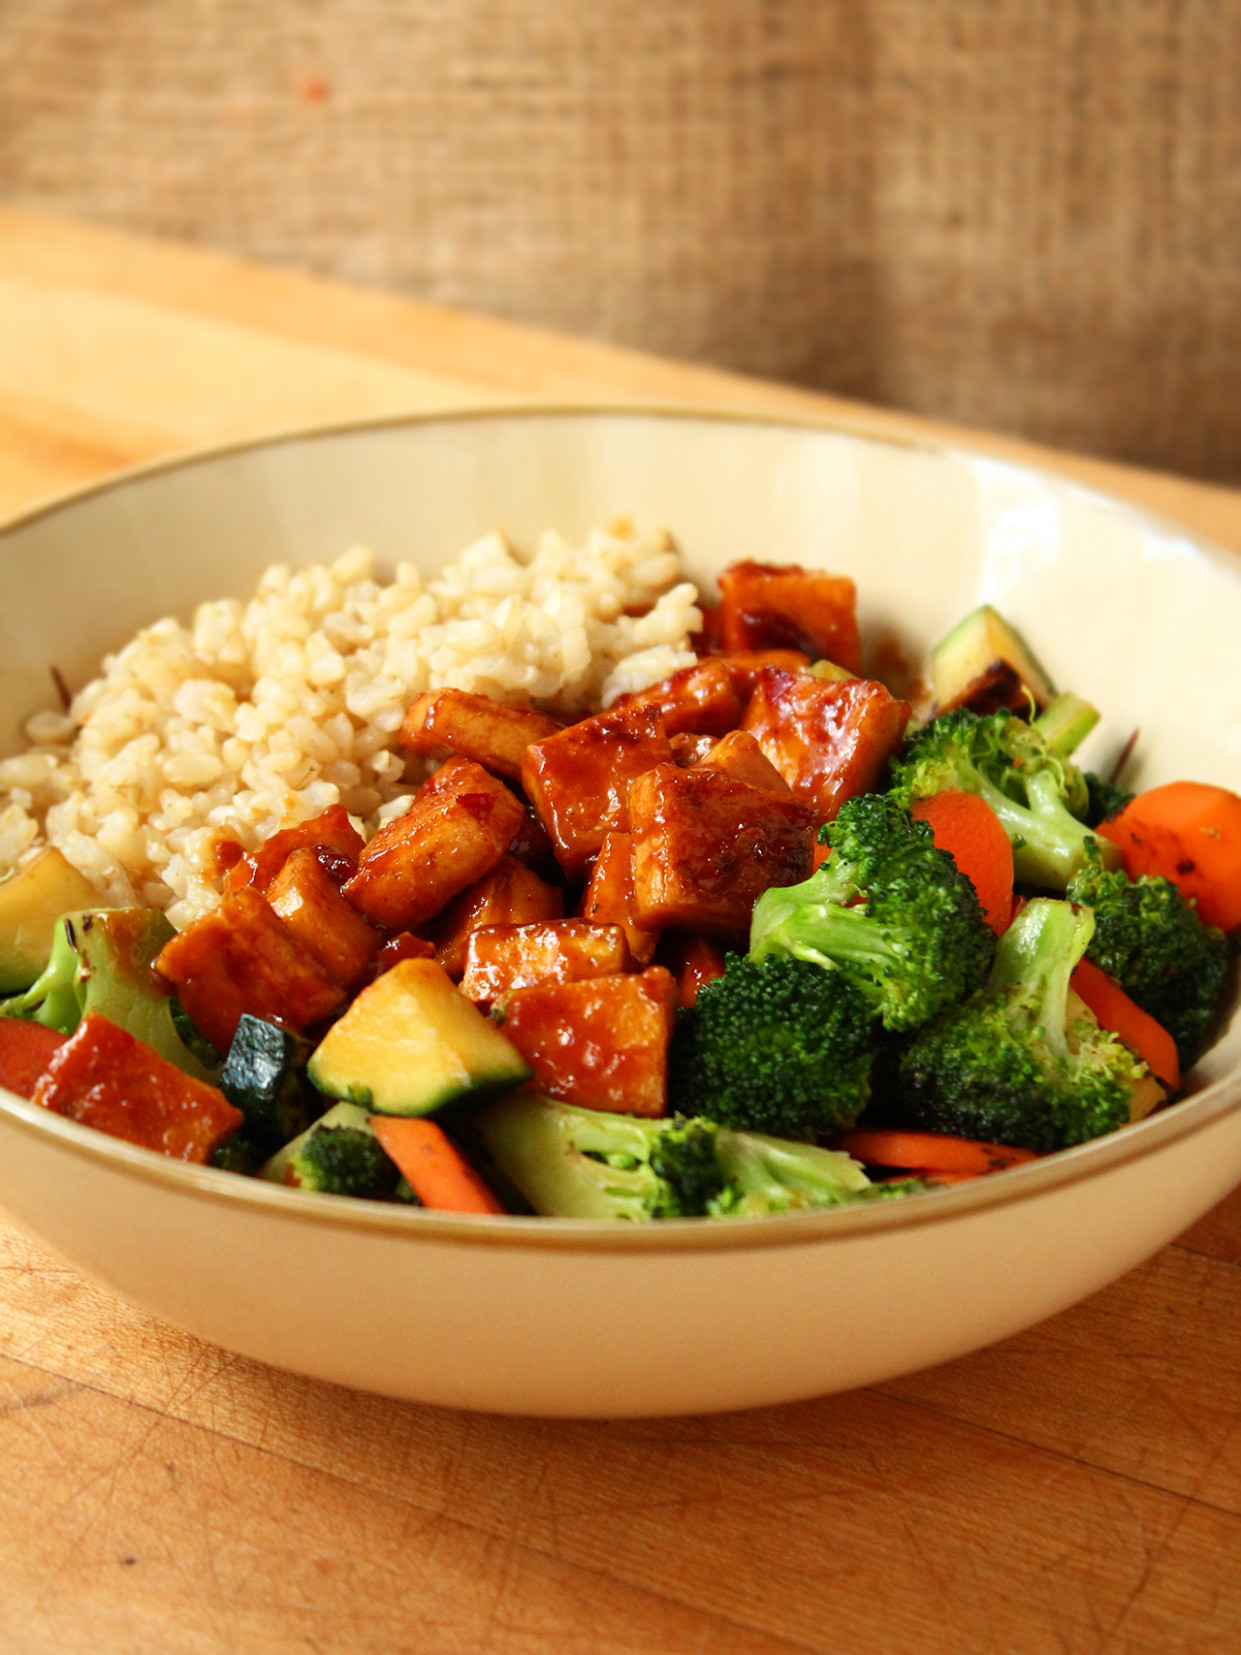 Teriyaki Peanut Tofu With Stir Fried Veggies & Brown Rice - Tofu Recipes Dinner